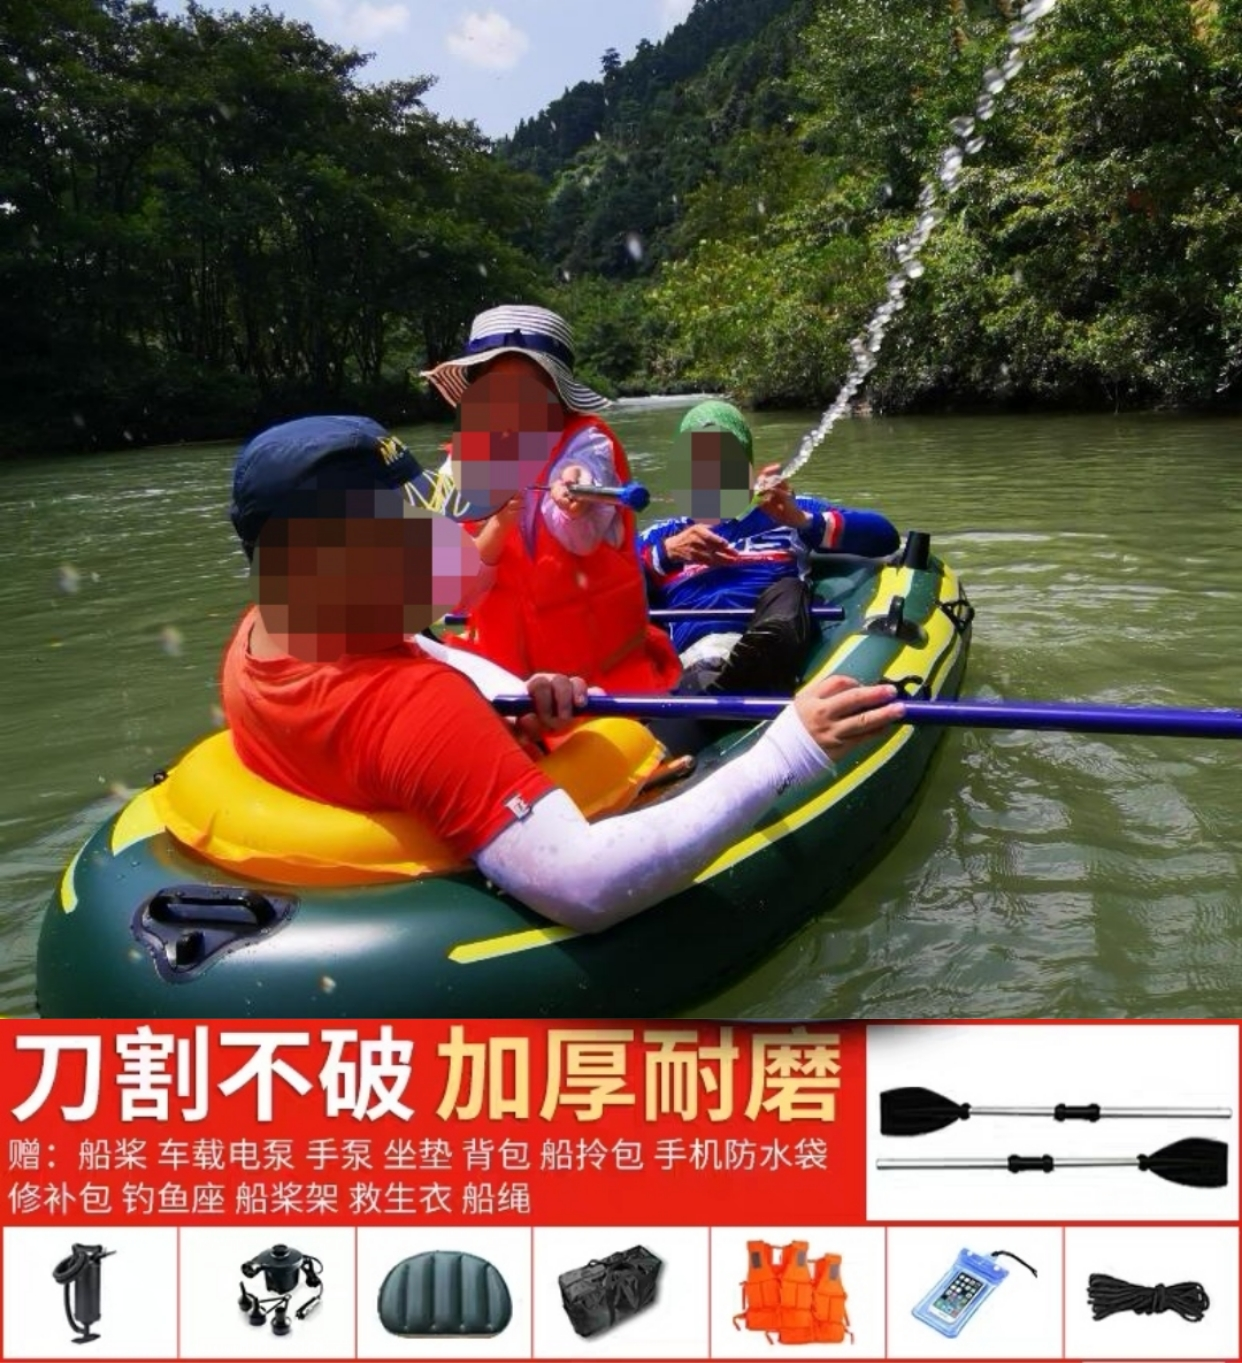 Inflatable boat rubber boat thick storm boat wear-resistant inflatable fishing kayak 2 people 3 people 4 people under the net fishing boat